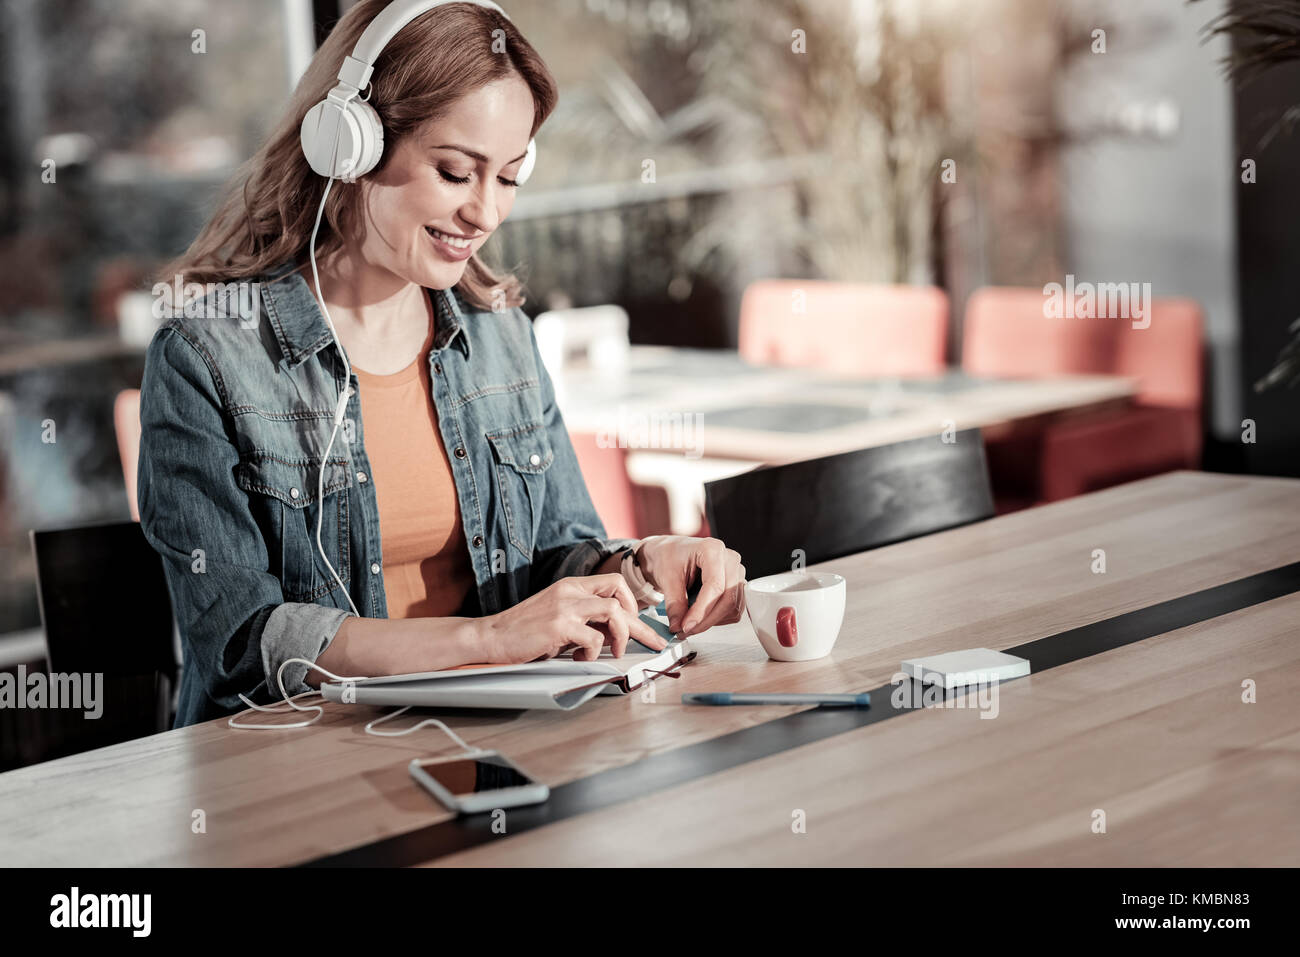 Smiling young woman having a productive morning in a cafe - Stock Image